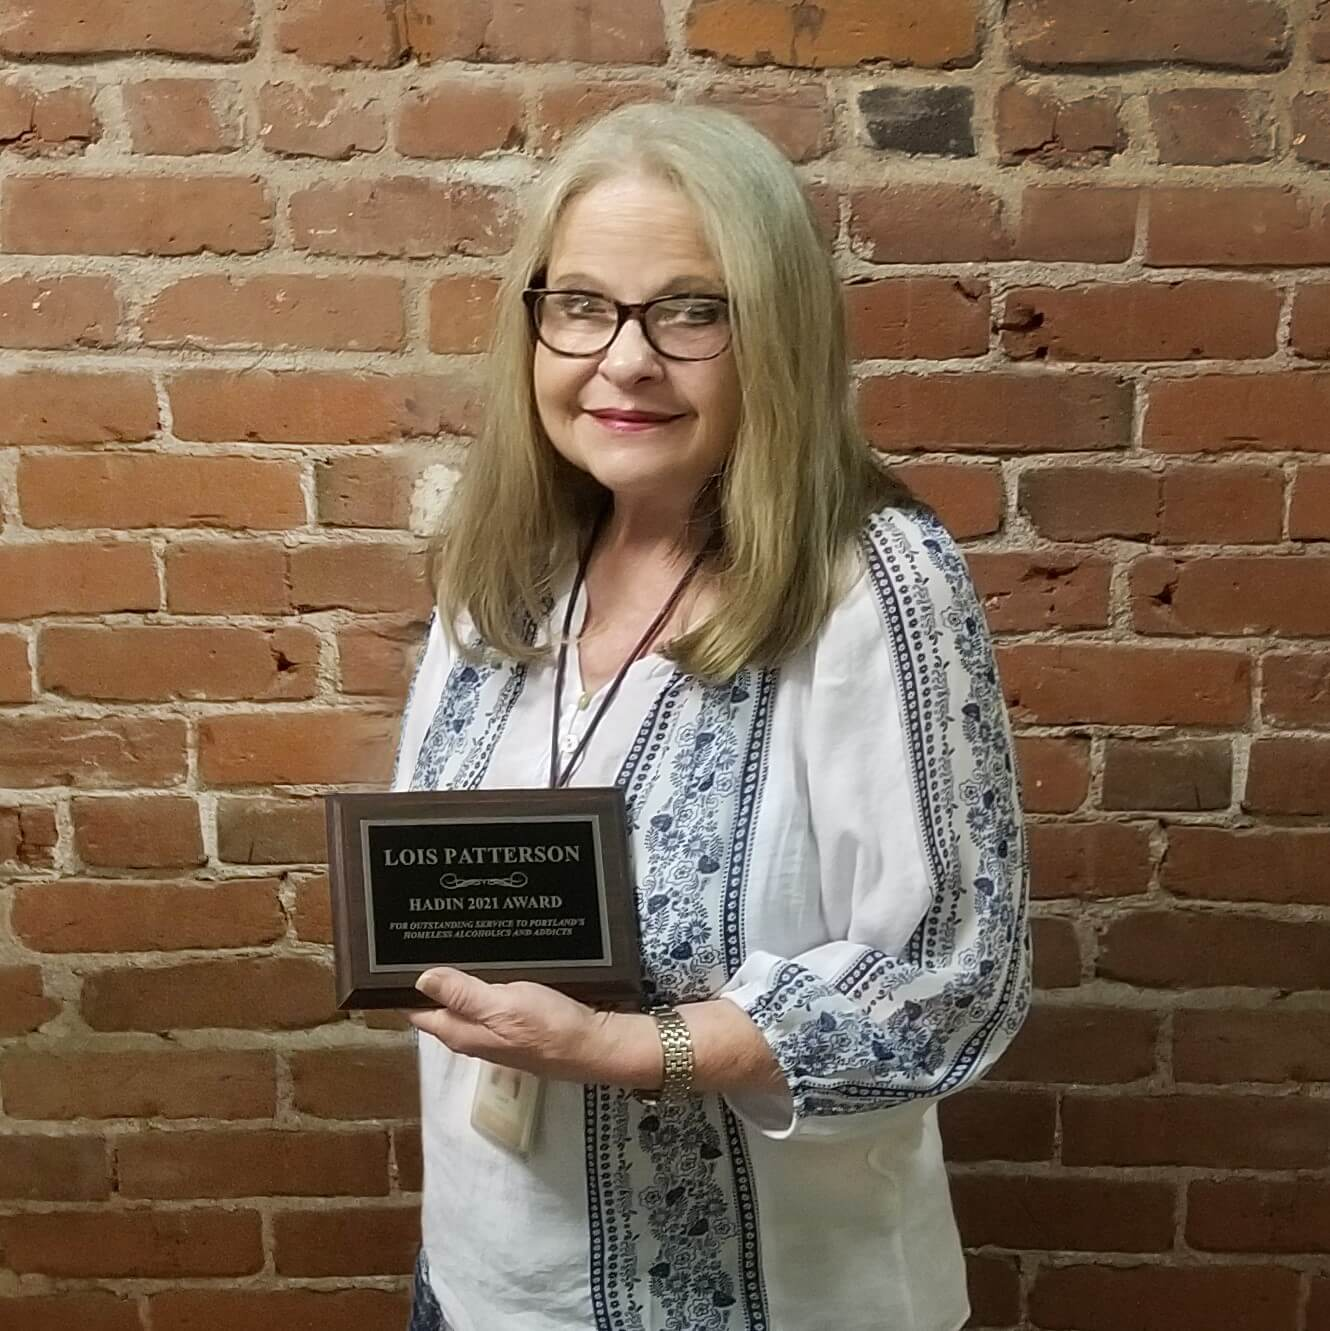 Lois Patterson holds her HADIN award.